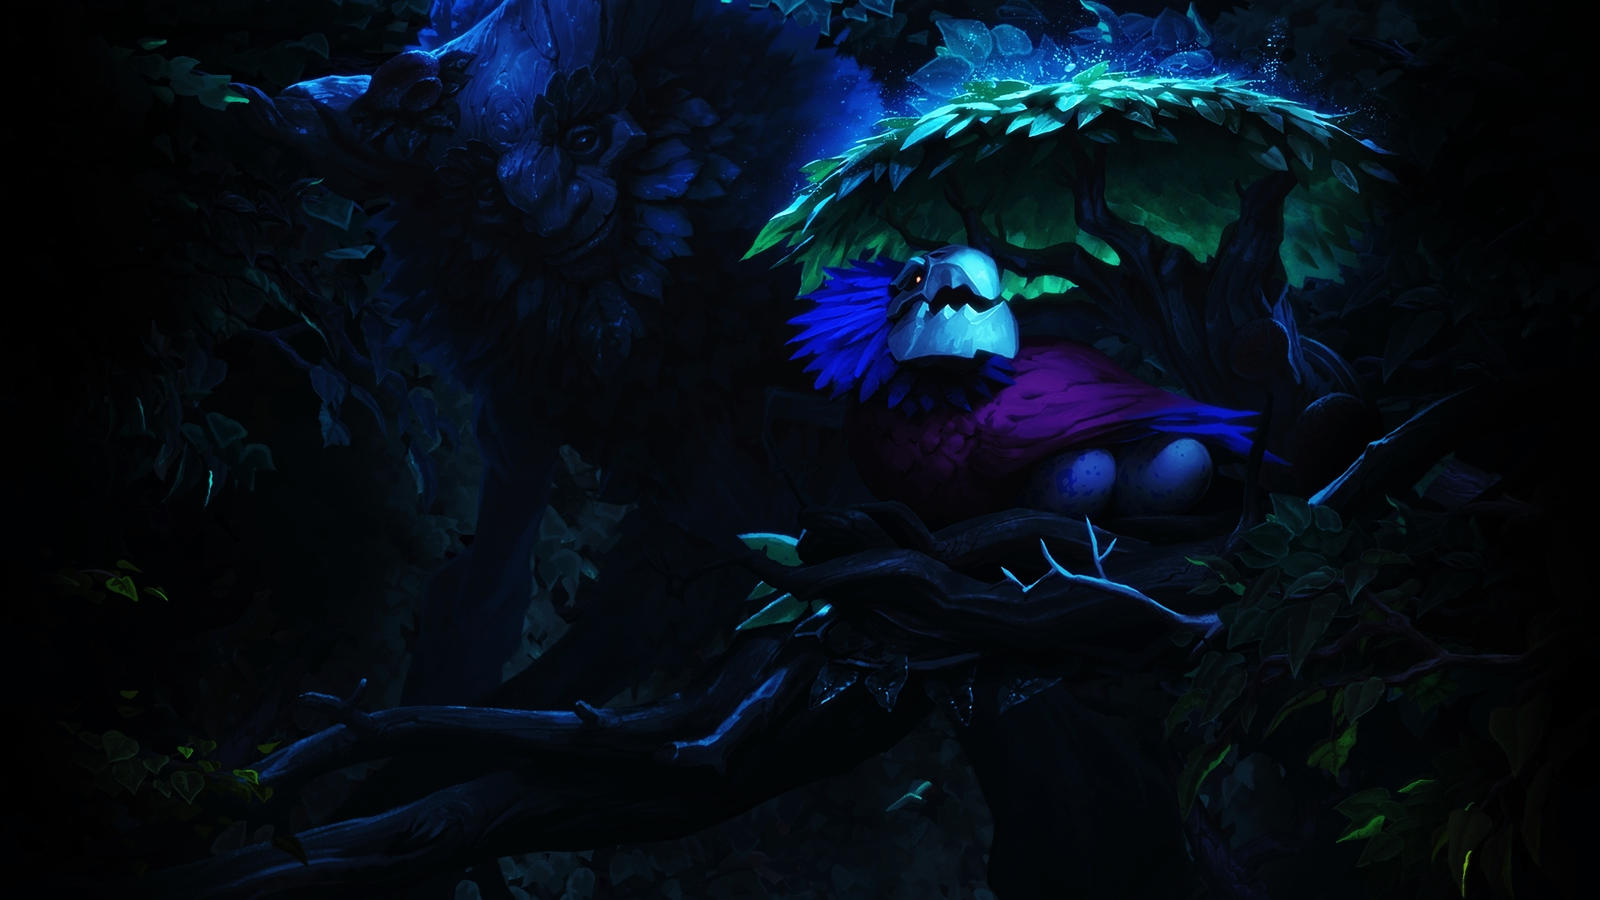 [LoL] Ivern - the Green Father (Wallpaper) by PopokuPinguPop90